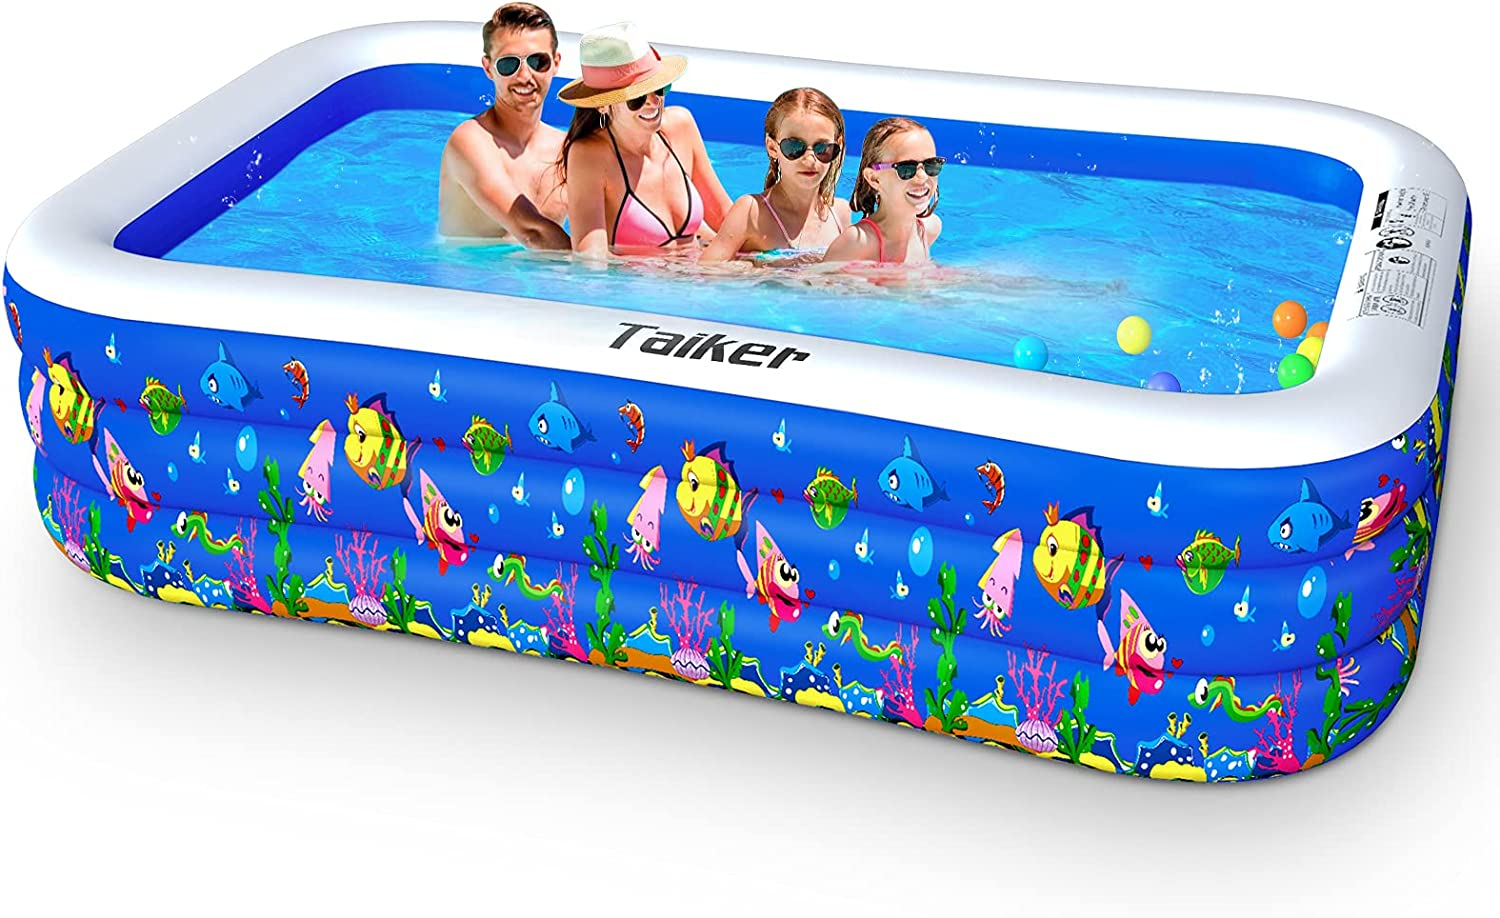 Taiker Inflatable Swimming Pools Kiddie Pools Family Lounge Pools 96 X 57 X 21 Large Family Swimming Pool For Kids Adults Babies Toddlers Outdoor Garden Backyard Kitchen Dining